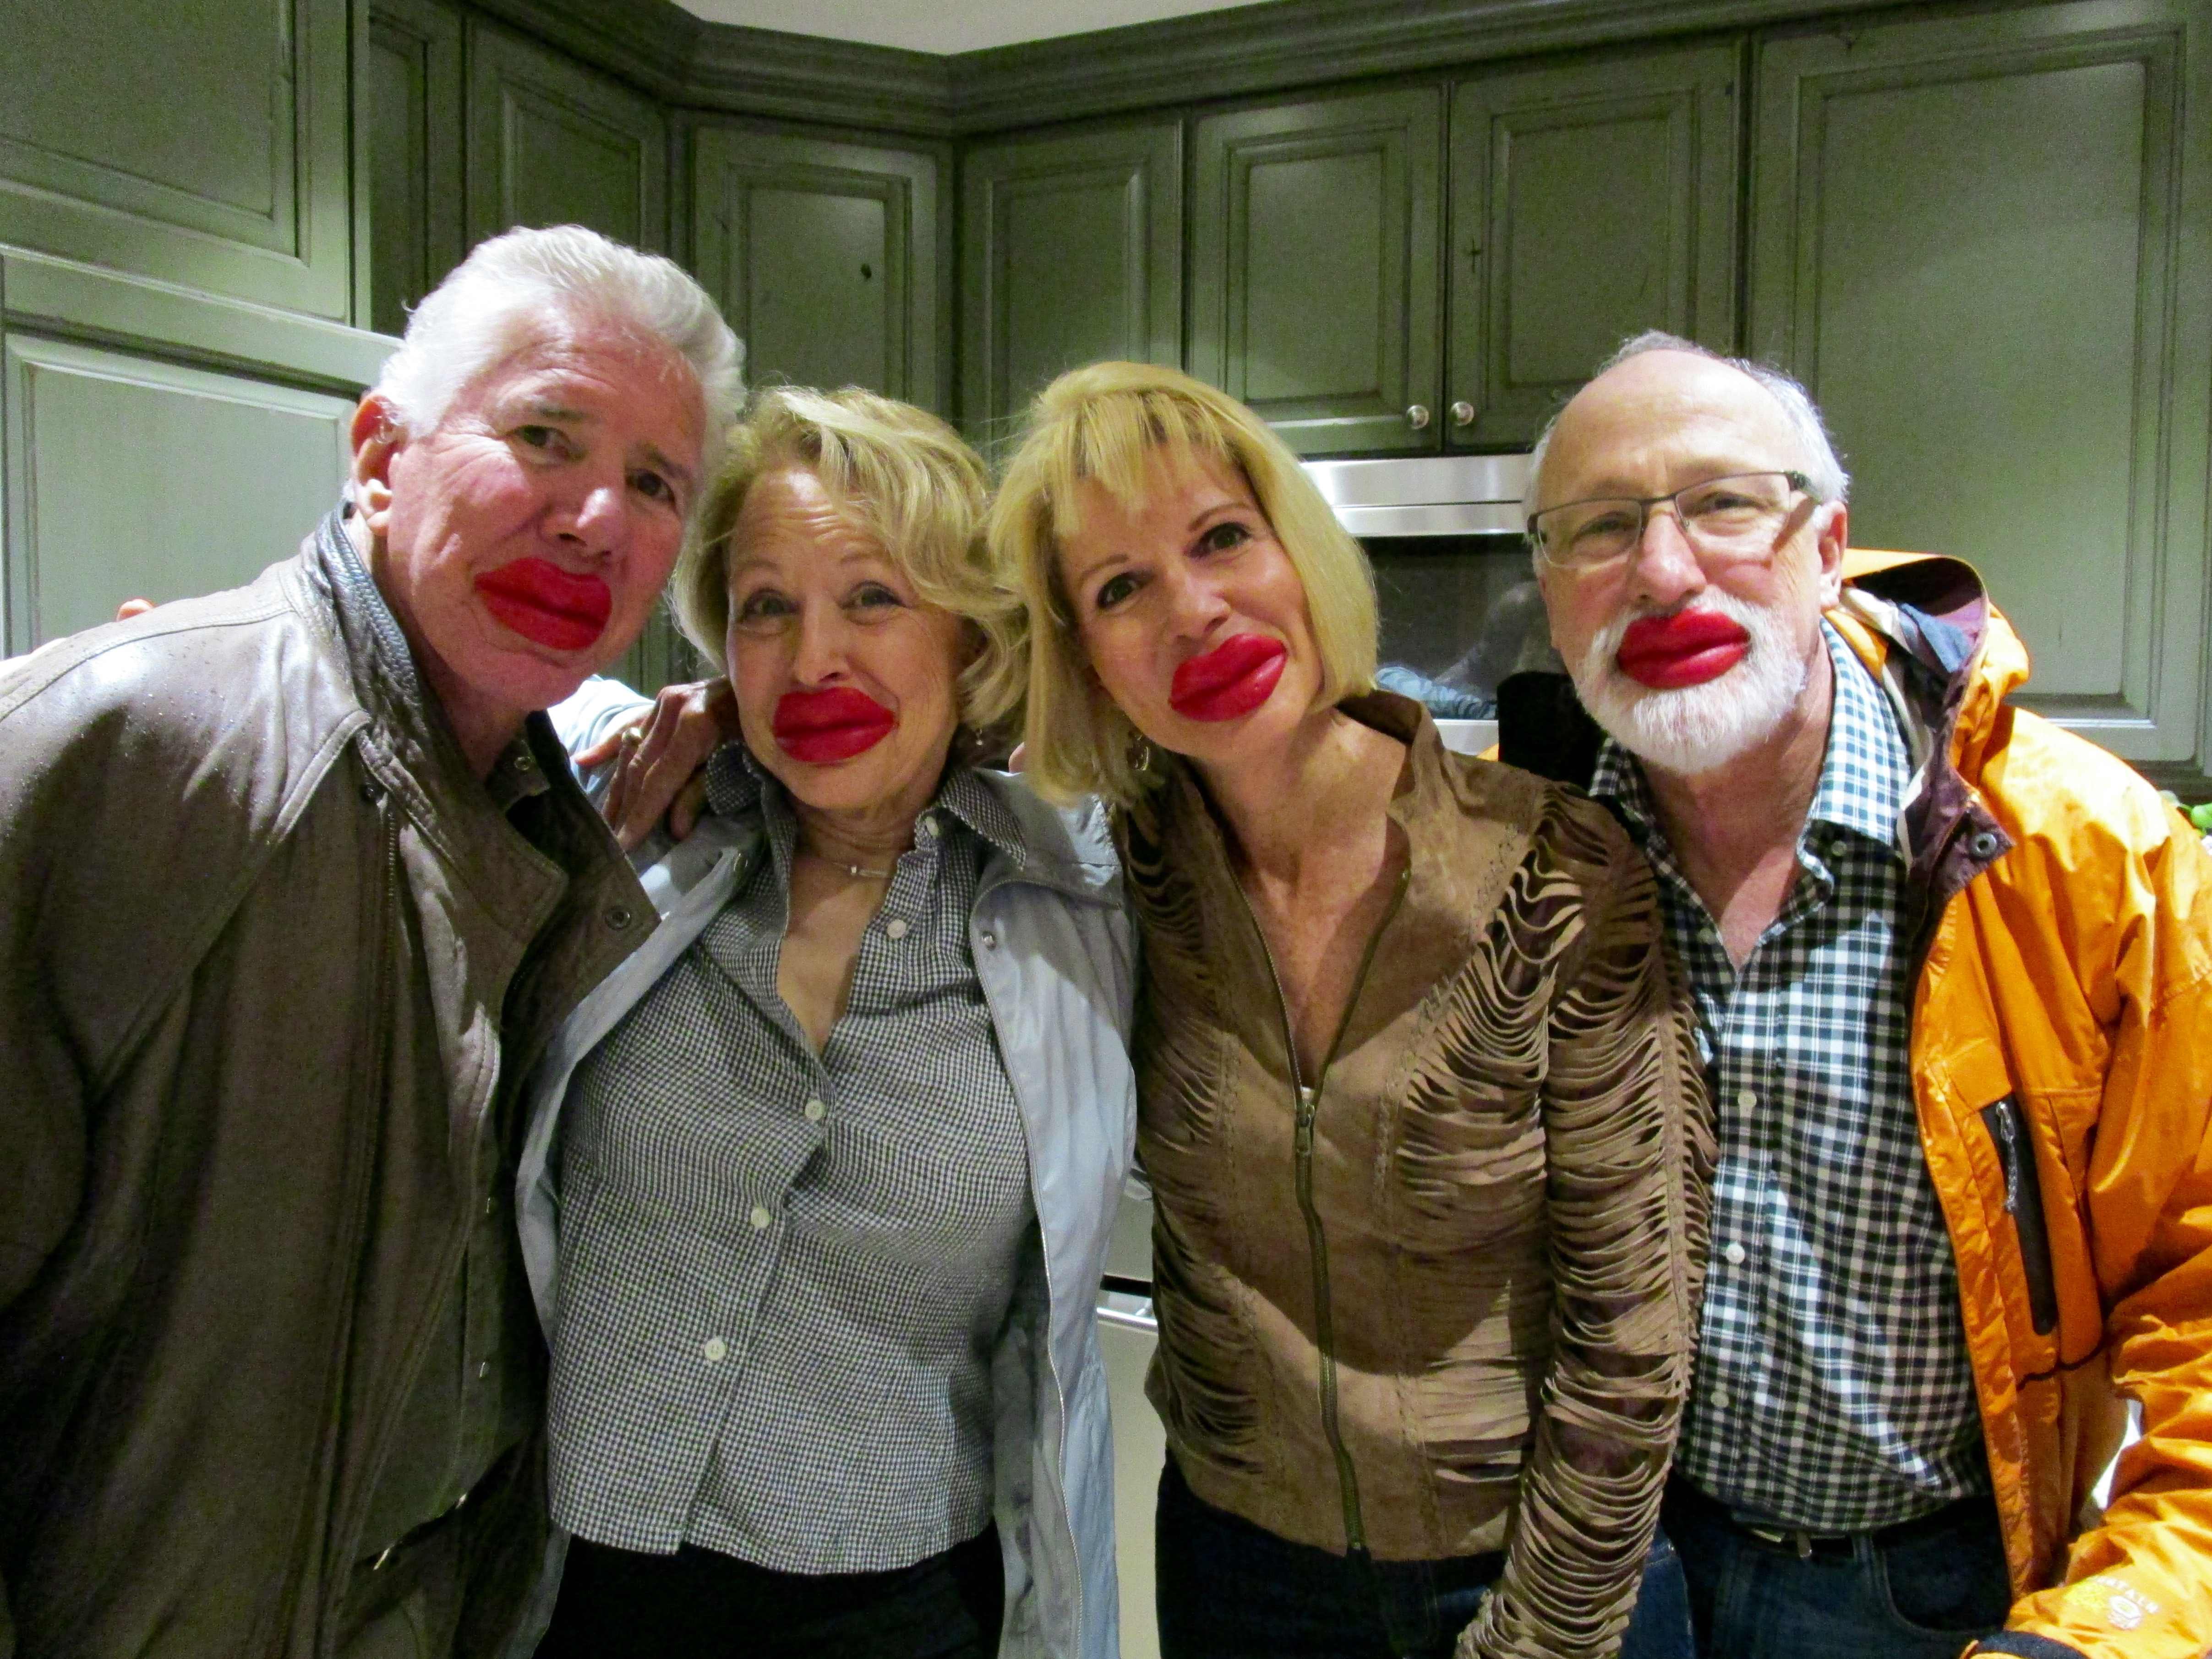 """When I issued my dinner invitation, I said, """"Wear Your Lipstick,"""" and they did. L to R, Steve Chase, Donna Grauer, Donna Chase and the birthday boy, Bernie Grauer."""